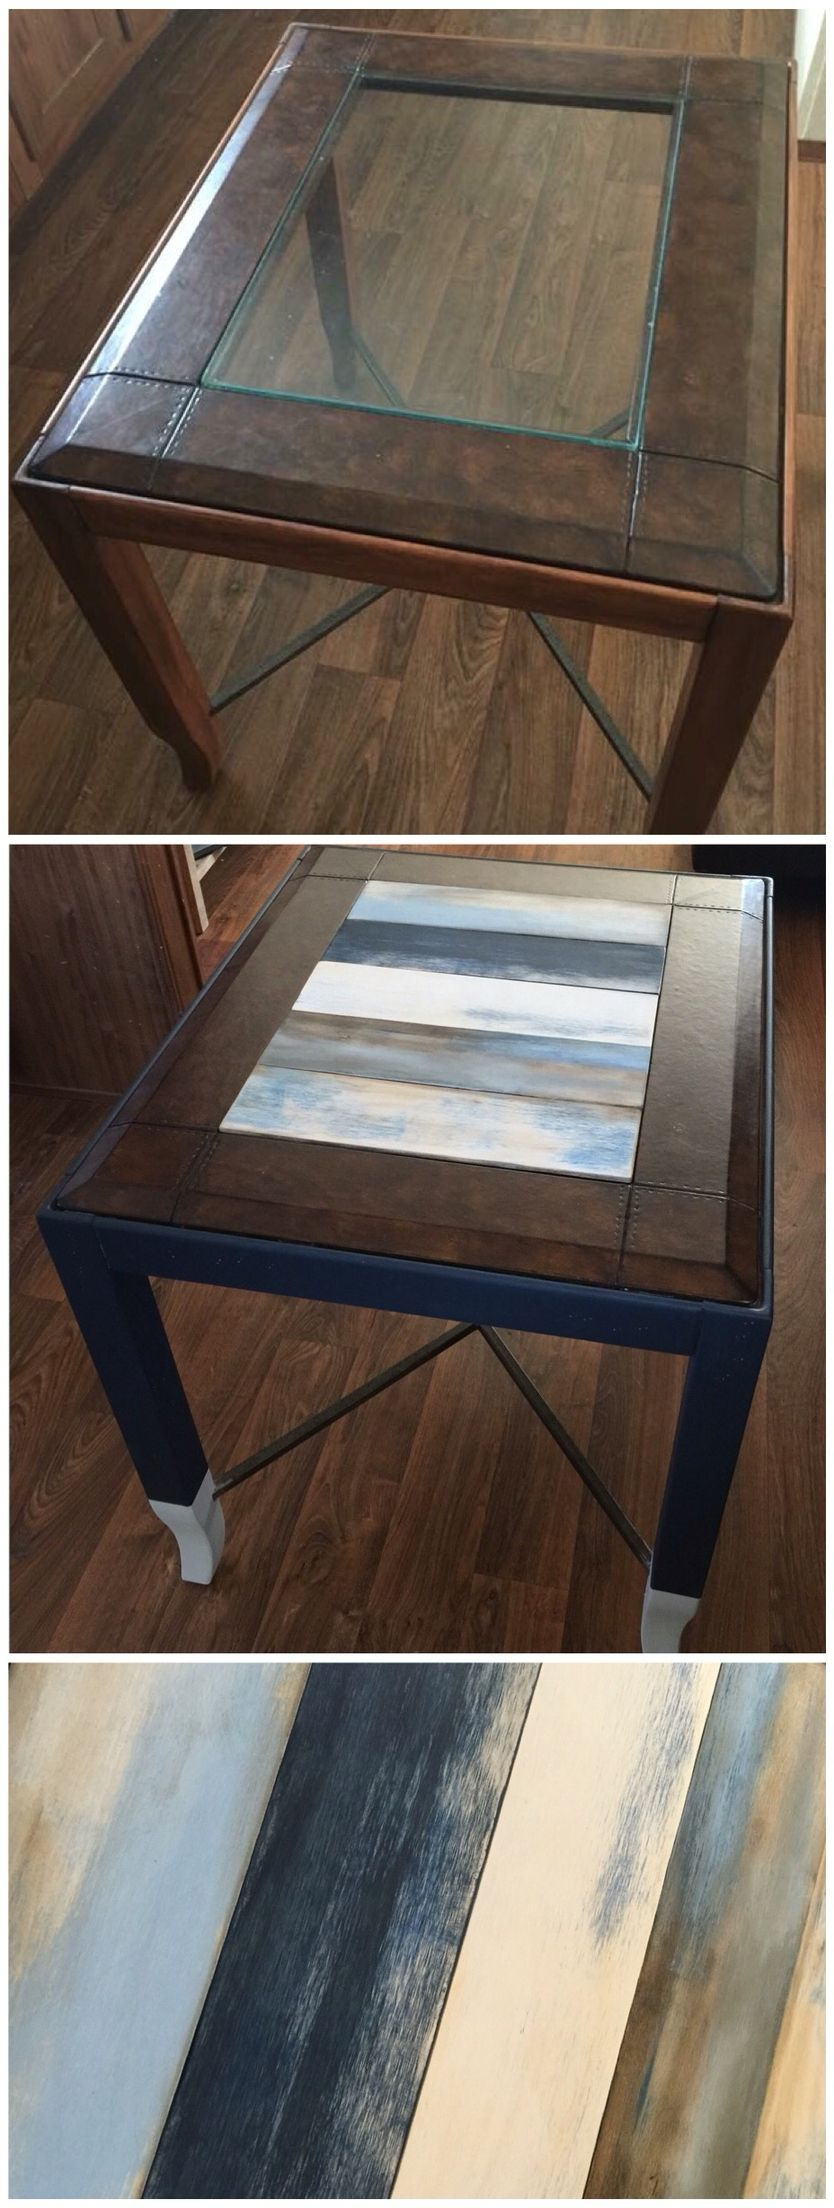 Replaced Glass Top End Table With Wood Panels And Distressed Each By Chalk Painting Sanding And Staining For Glass Top End Tables Glass Top Table Coffee Table [ 2208 x 834 Pixel ]